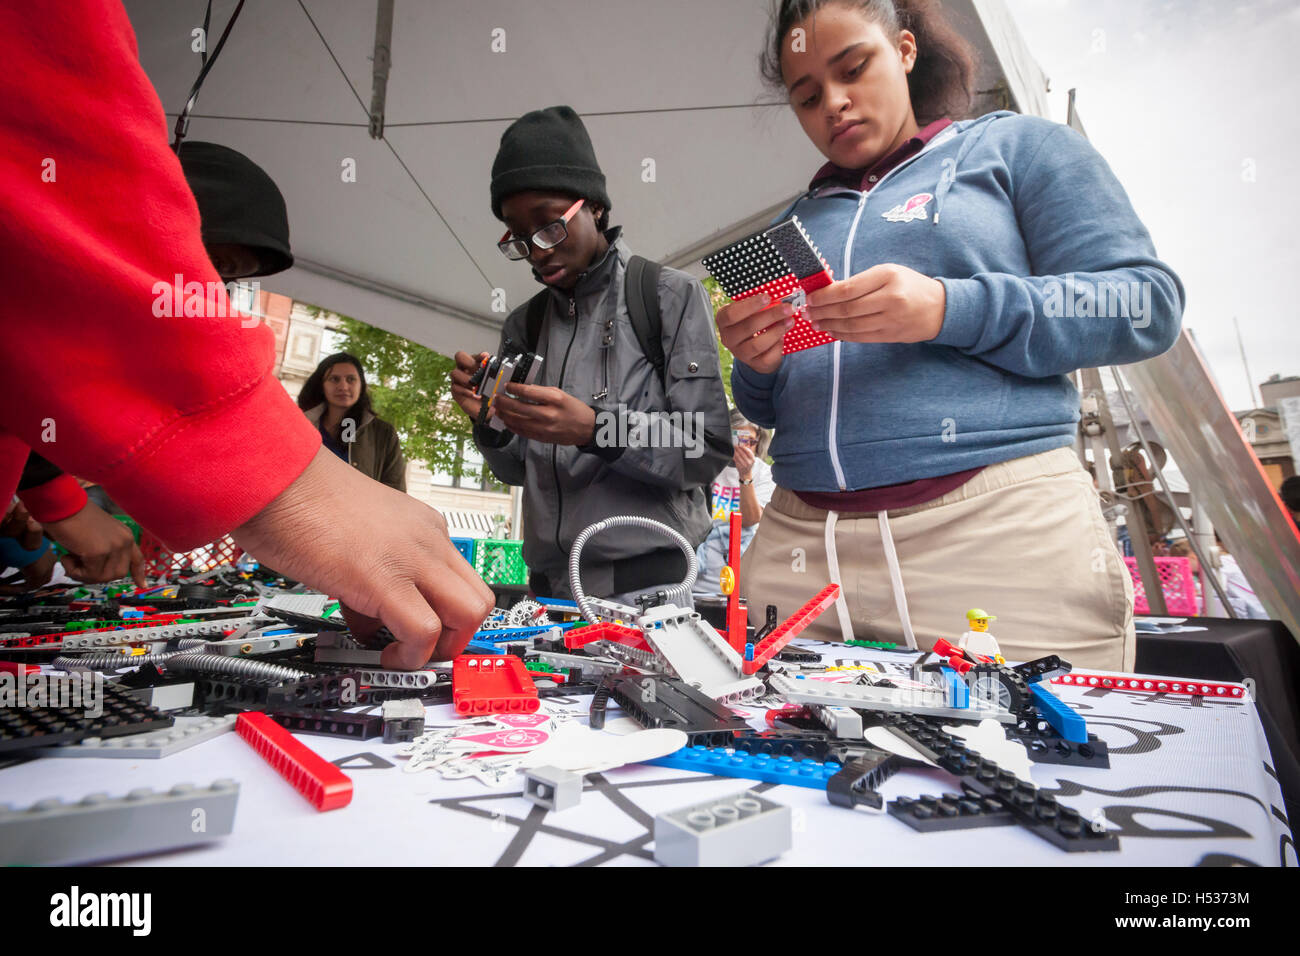 Participants experiment with Lego robotics in the Geek Street Fair in Union Square Park in New York on Thursday, - Stock Image